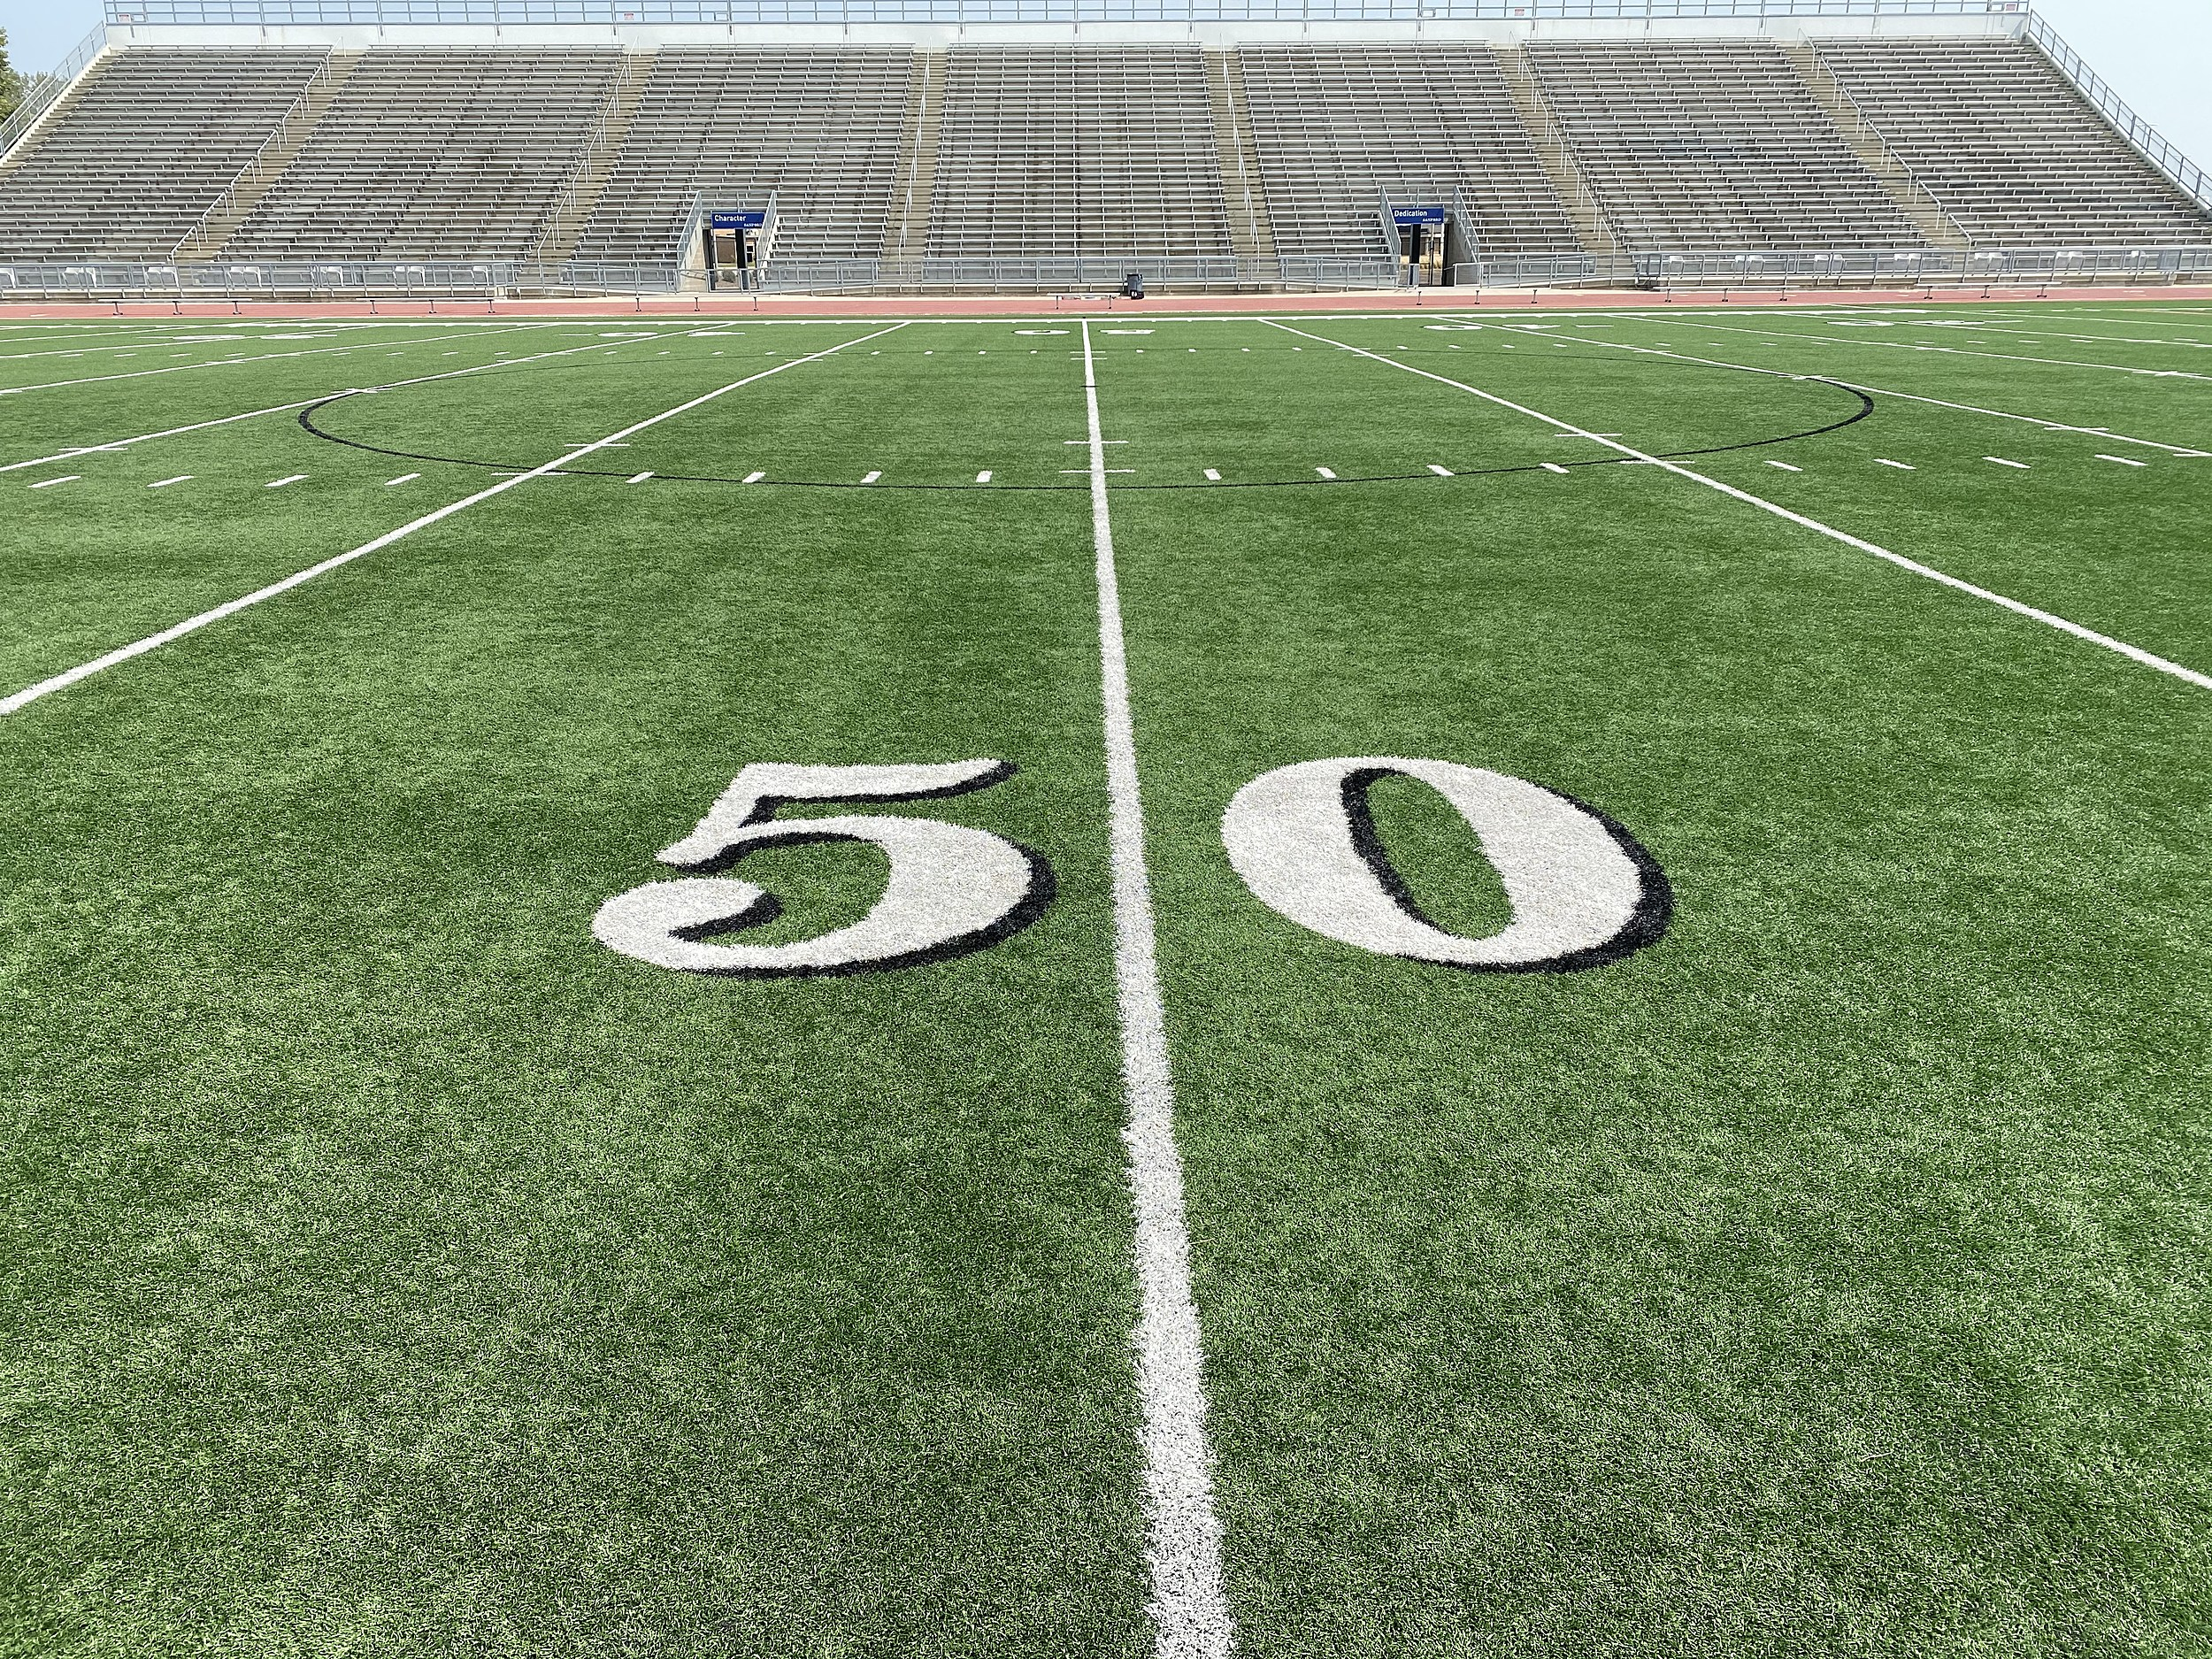 Howard Wood Field 50 Yard Line